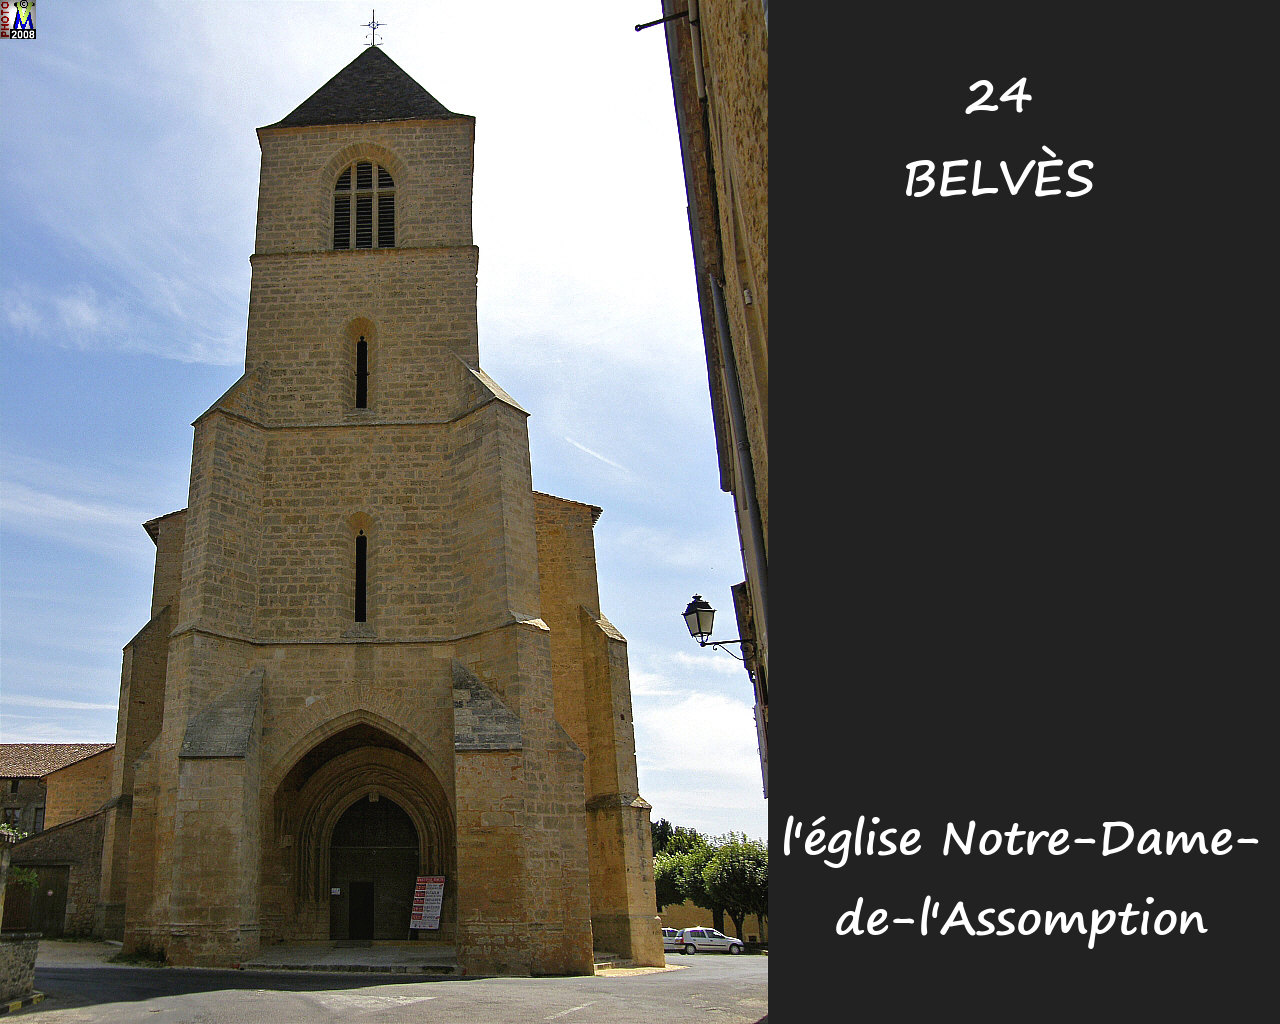 24BELVES_eglise_102.jpg